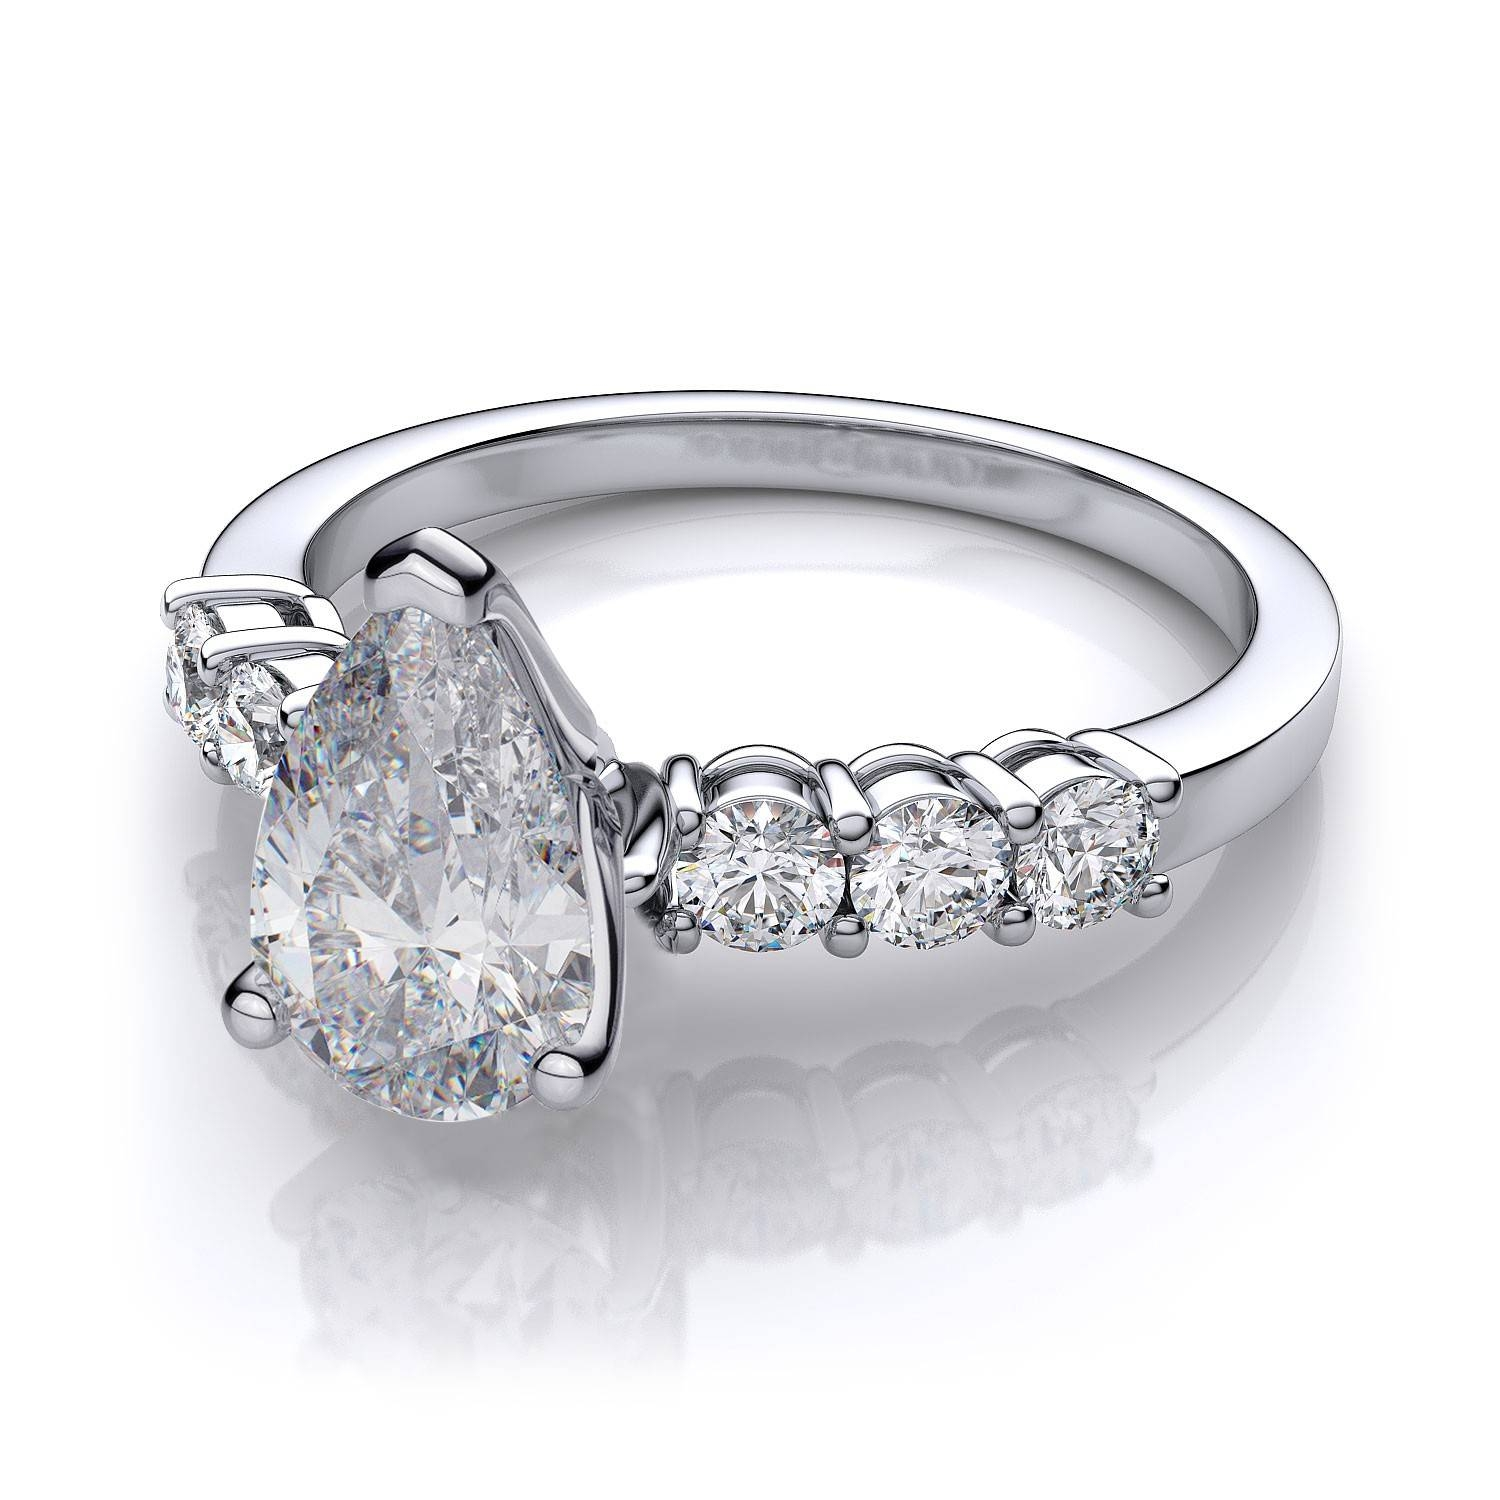 shop setting carat scale engagement subsampling diamond upscale co crop product ring false jewellery tiffany settings